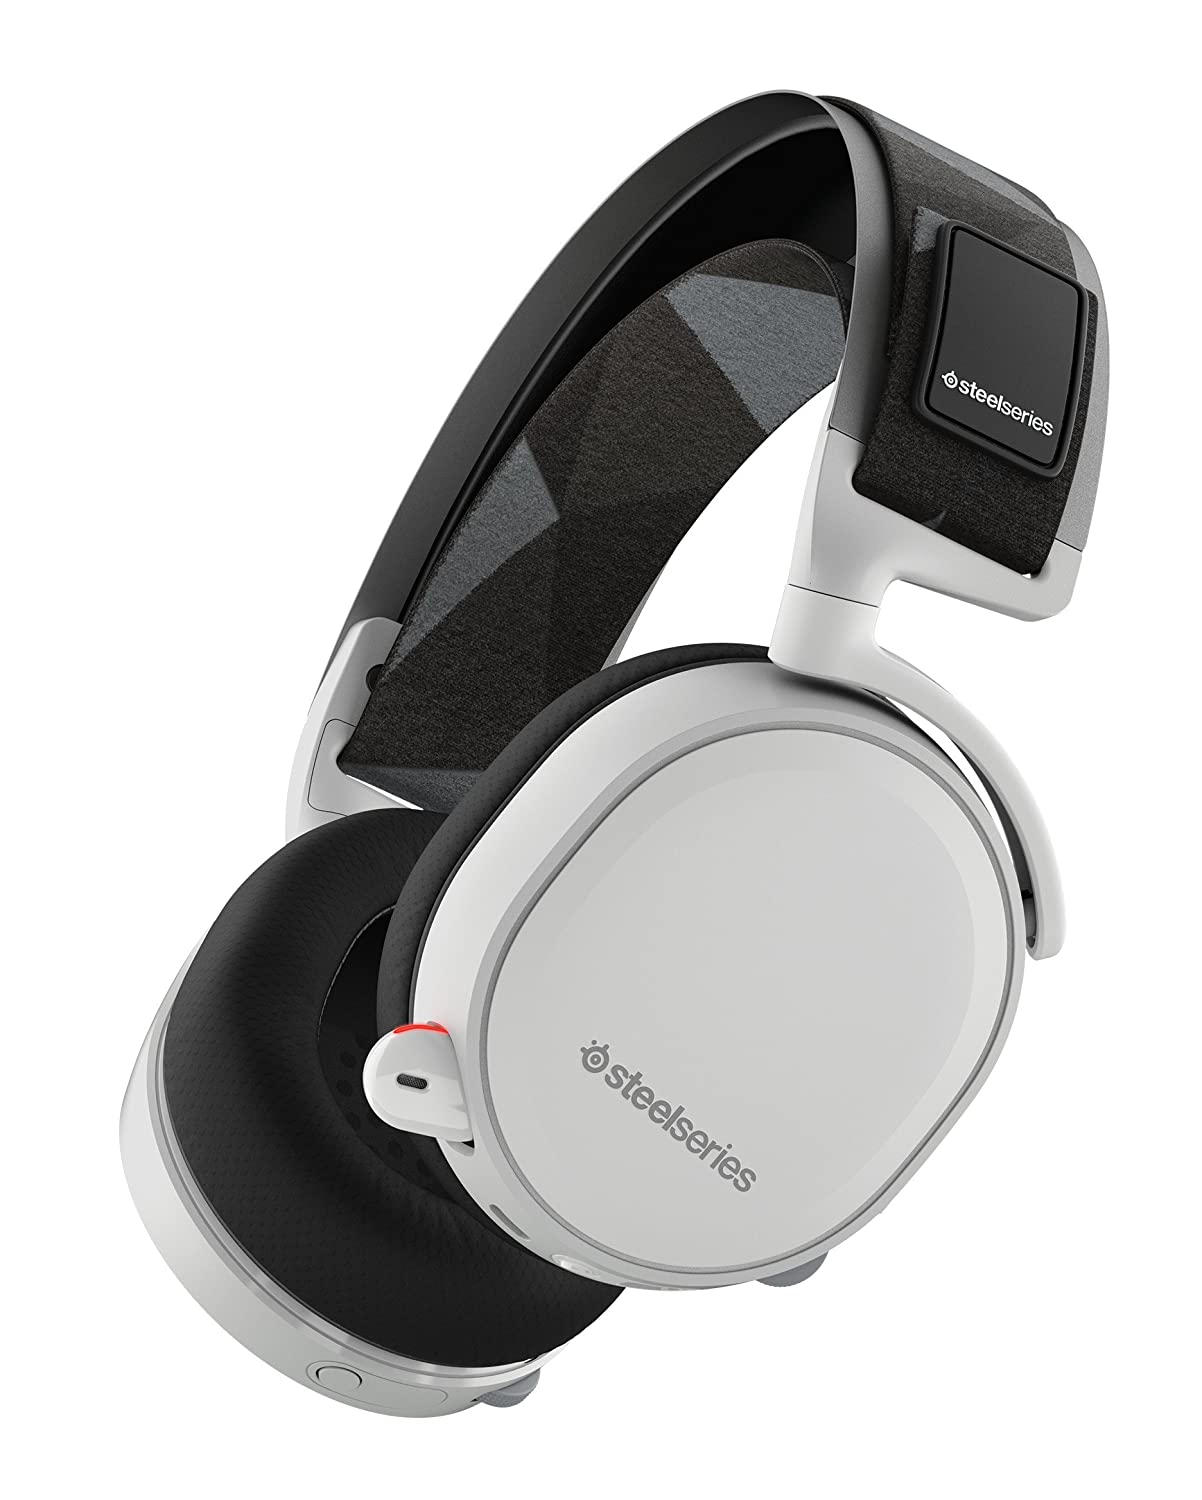 SteelSeries Arctis 7 - Gamming Headset